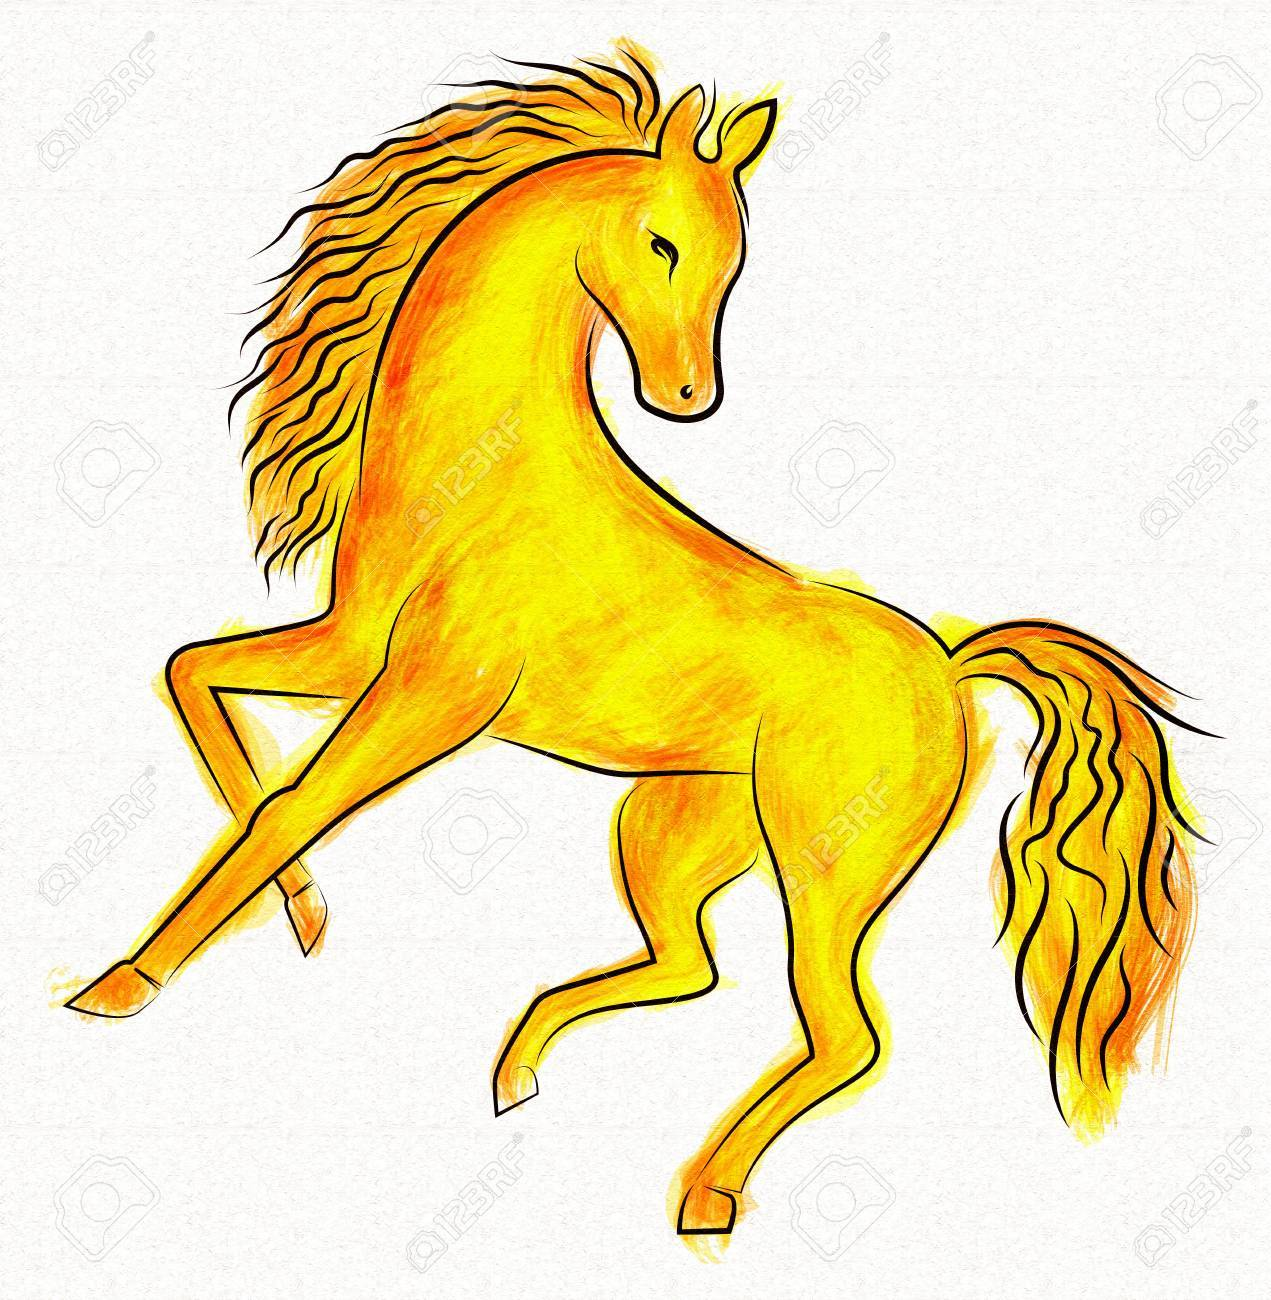 Digital Painting Golden Horse Design With Isolated Background Stock Photo Picture And Royalty Free Image Image 55592908